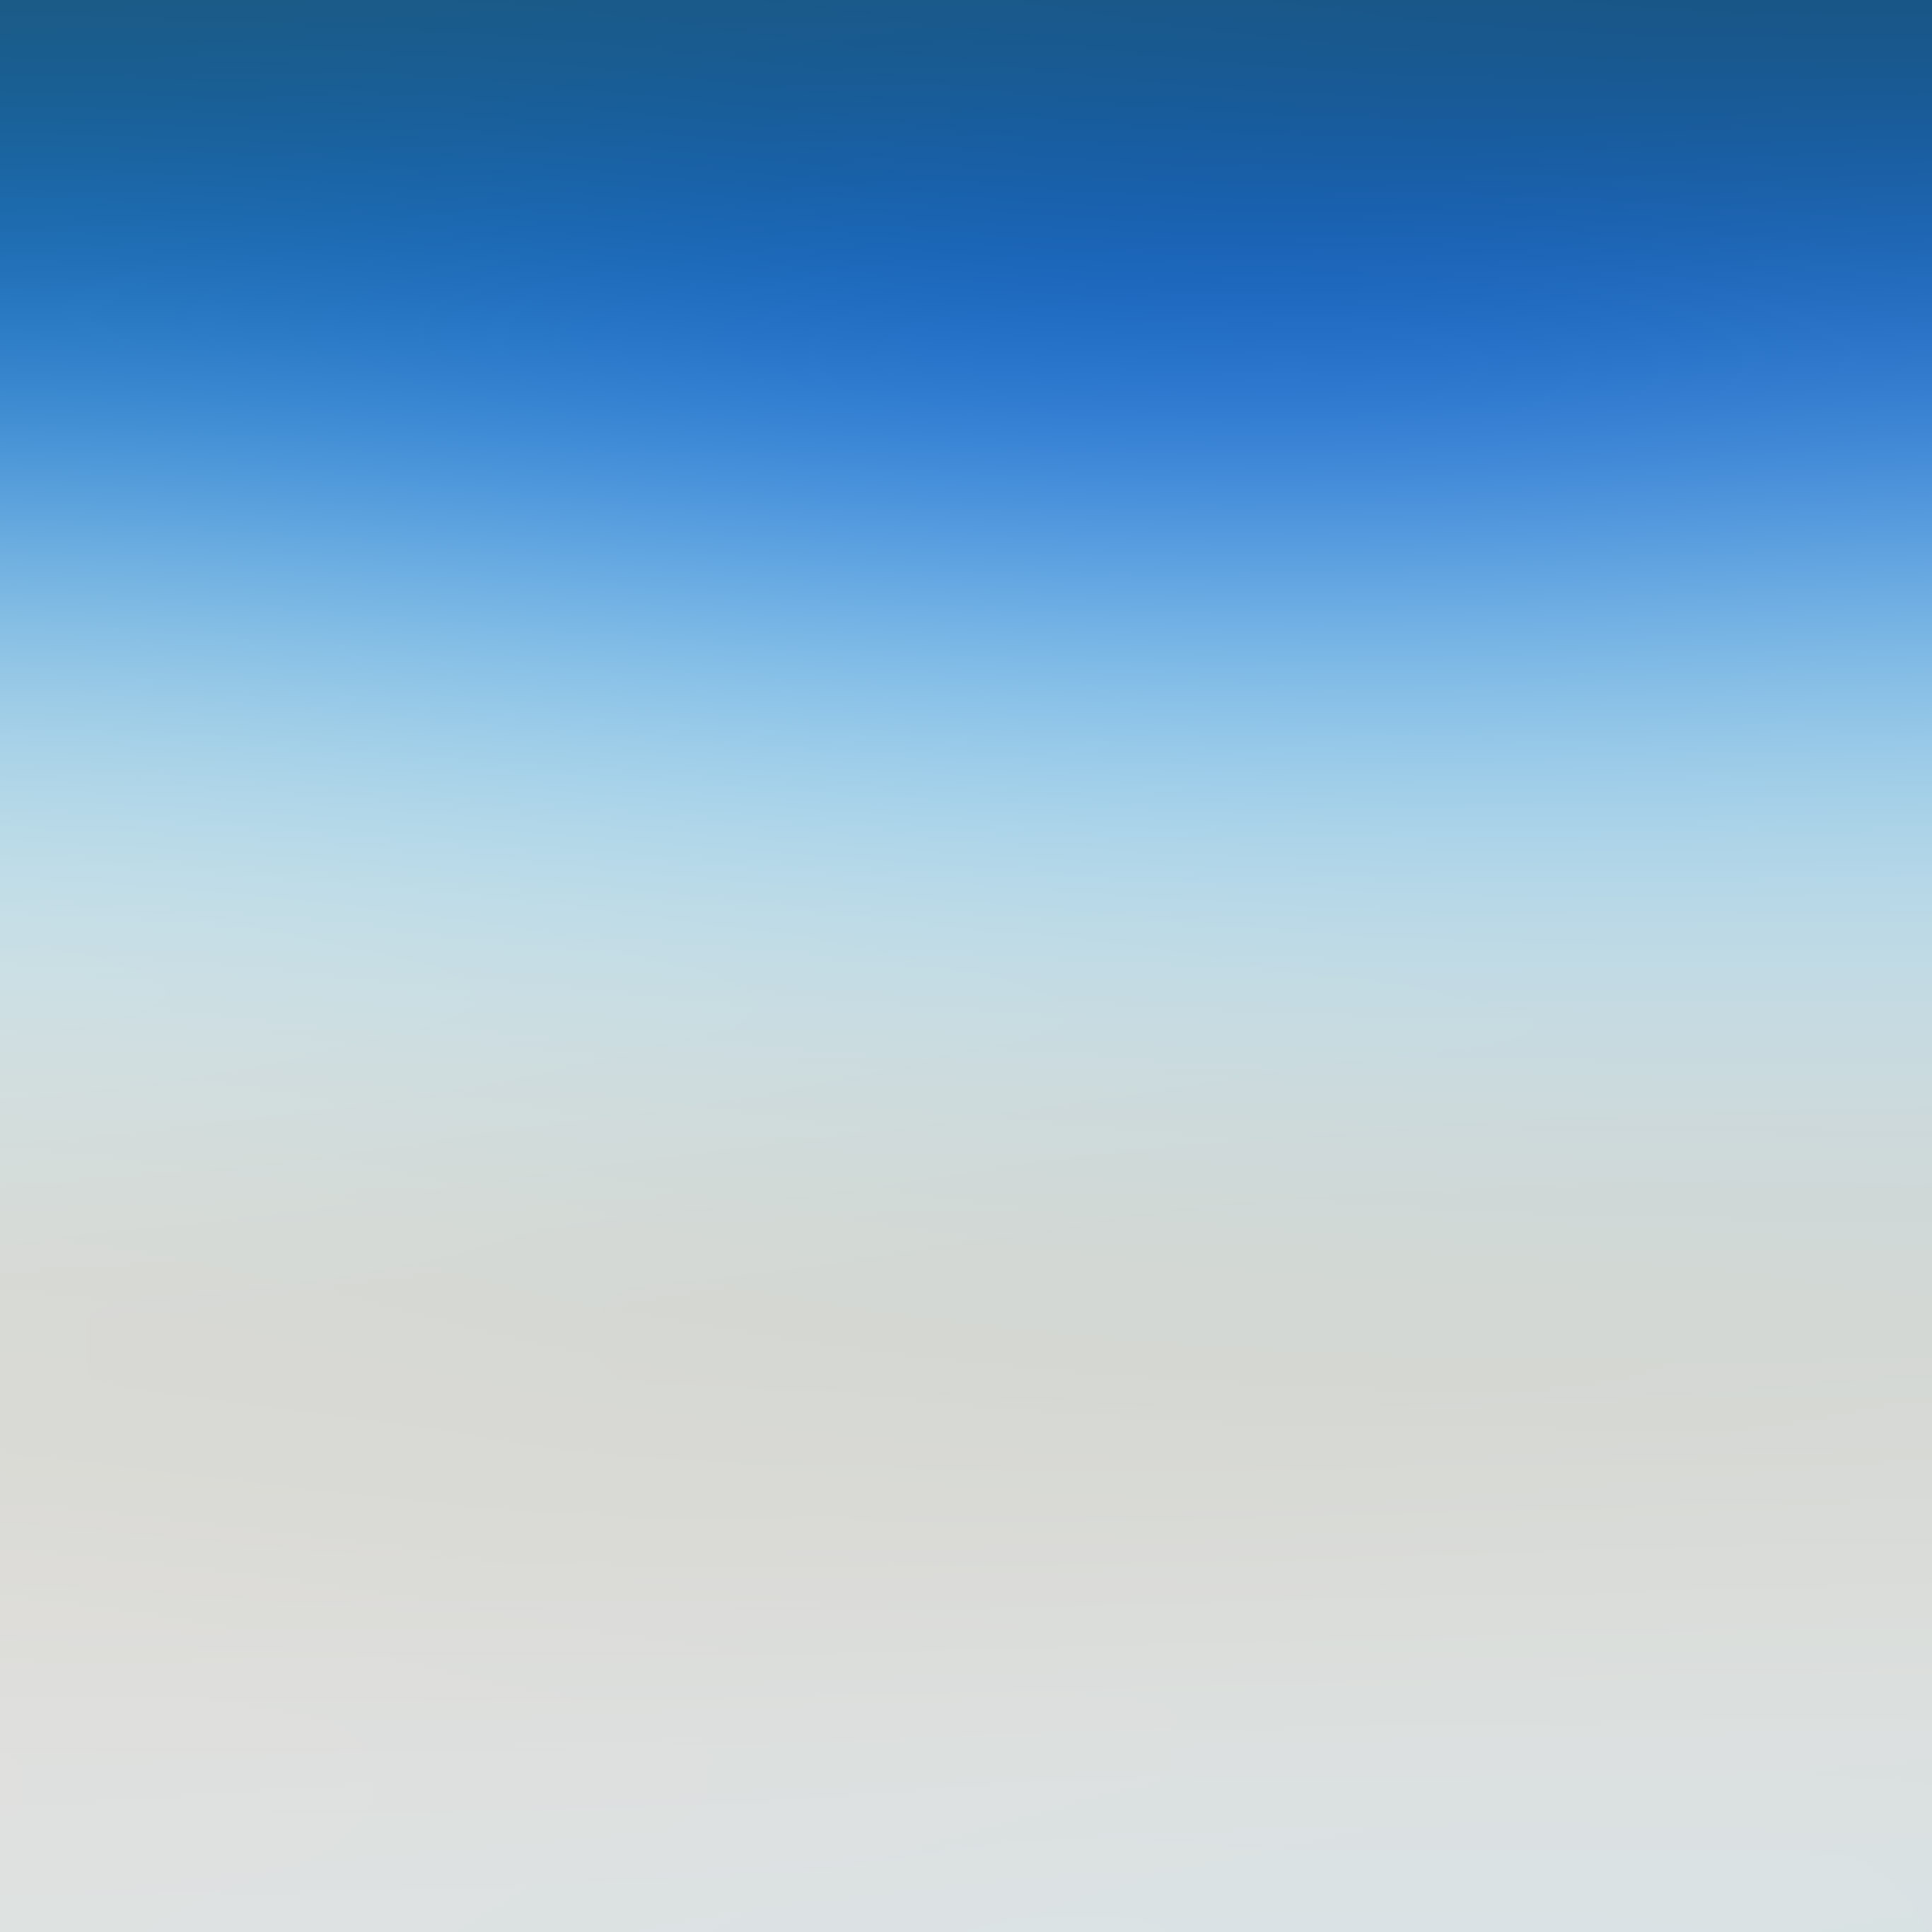 Blue Gradient Wallpapers on